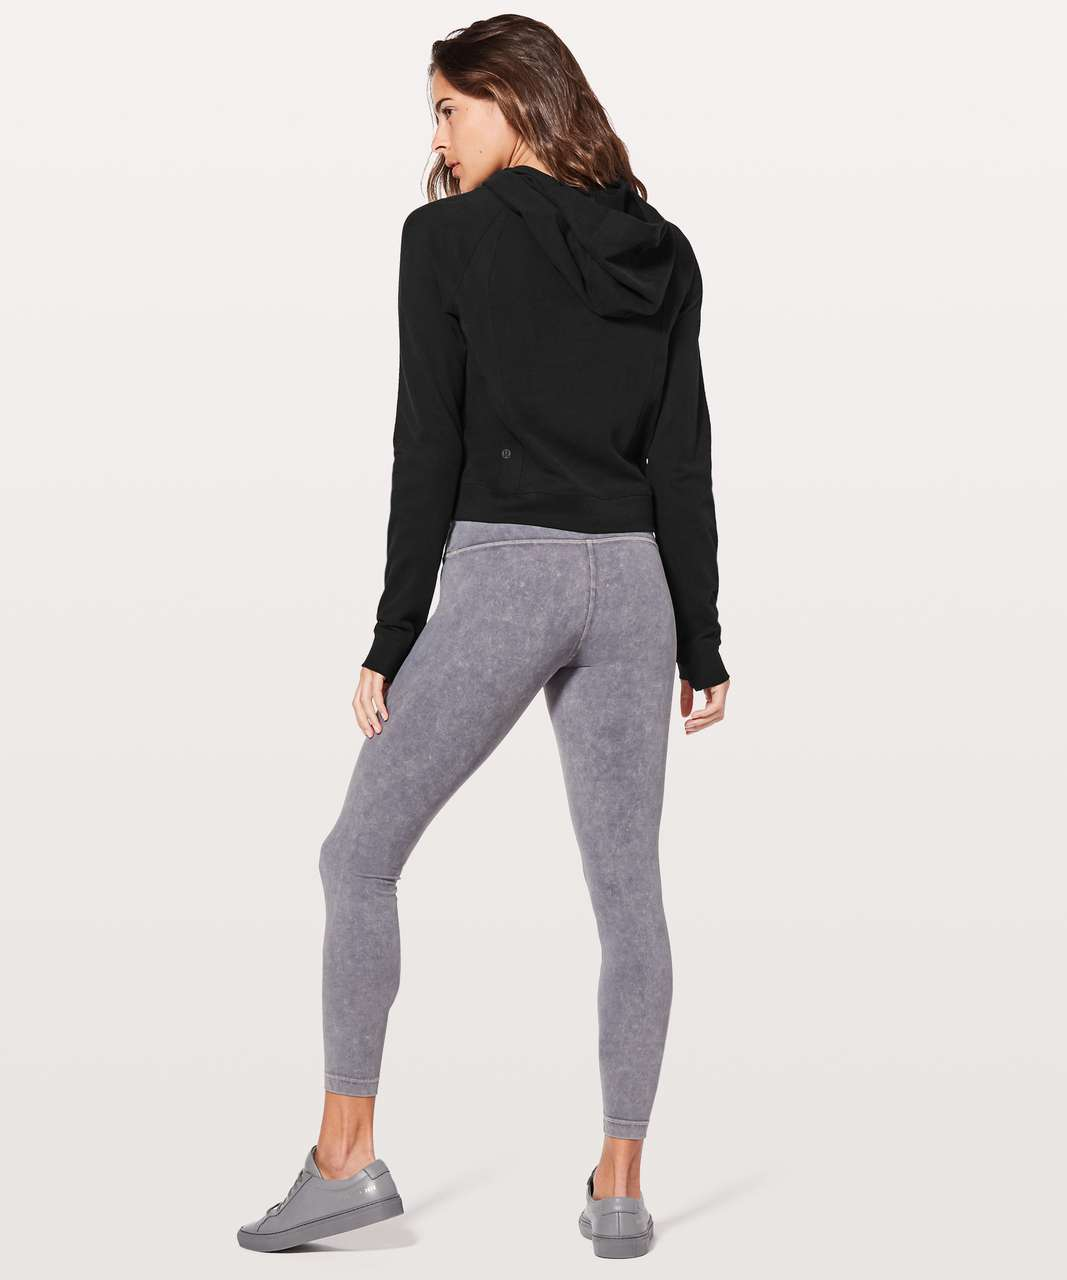 Lululemon Nice & Natural Popover - Black